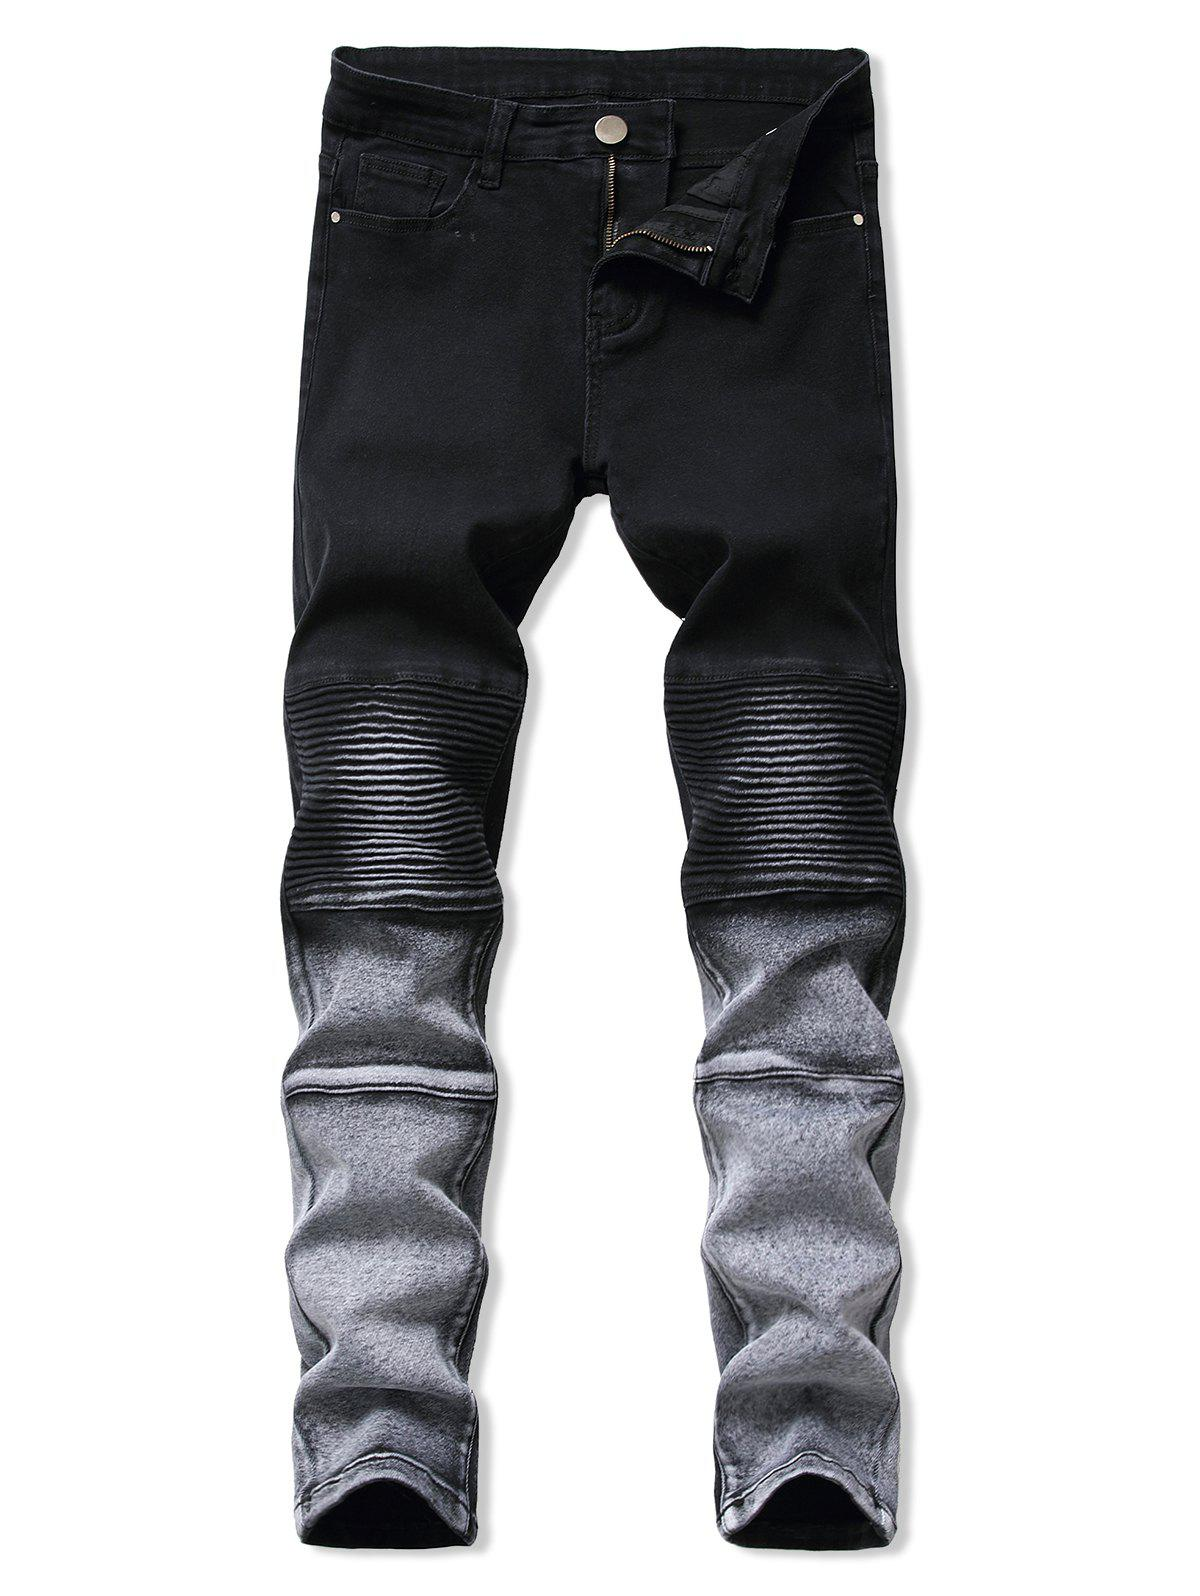 Contrast Tapered Biker Jeans - BLACK 38